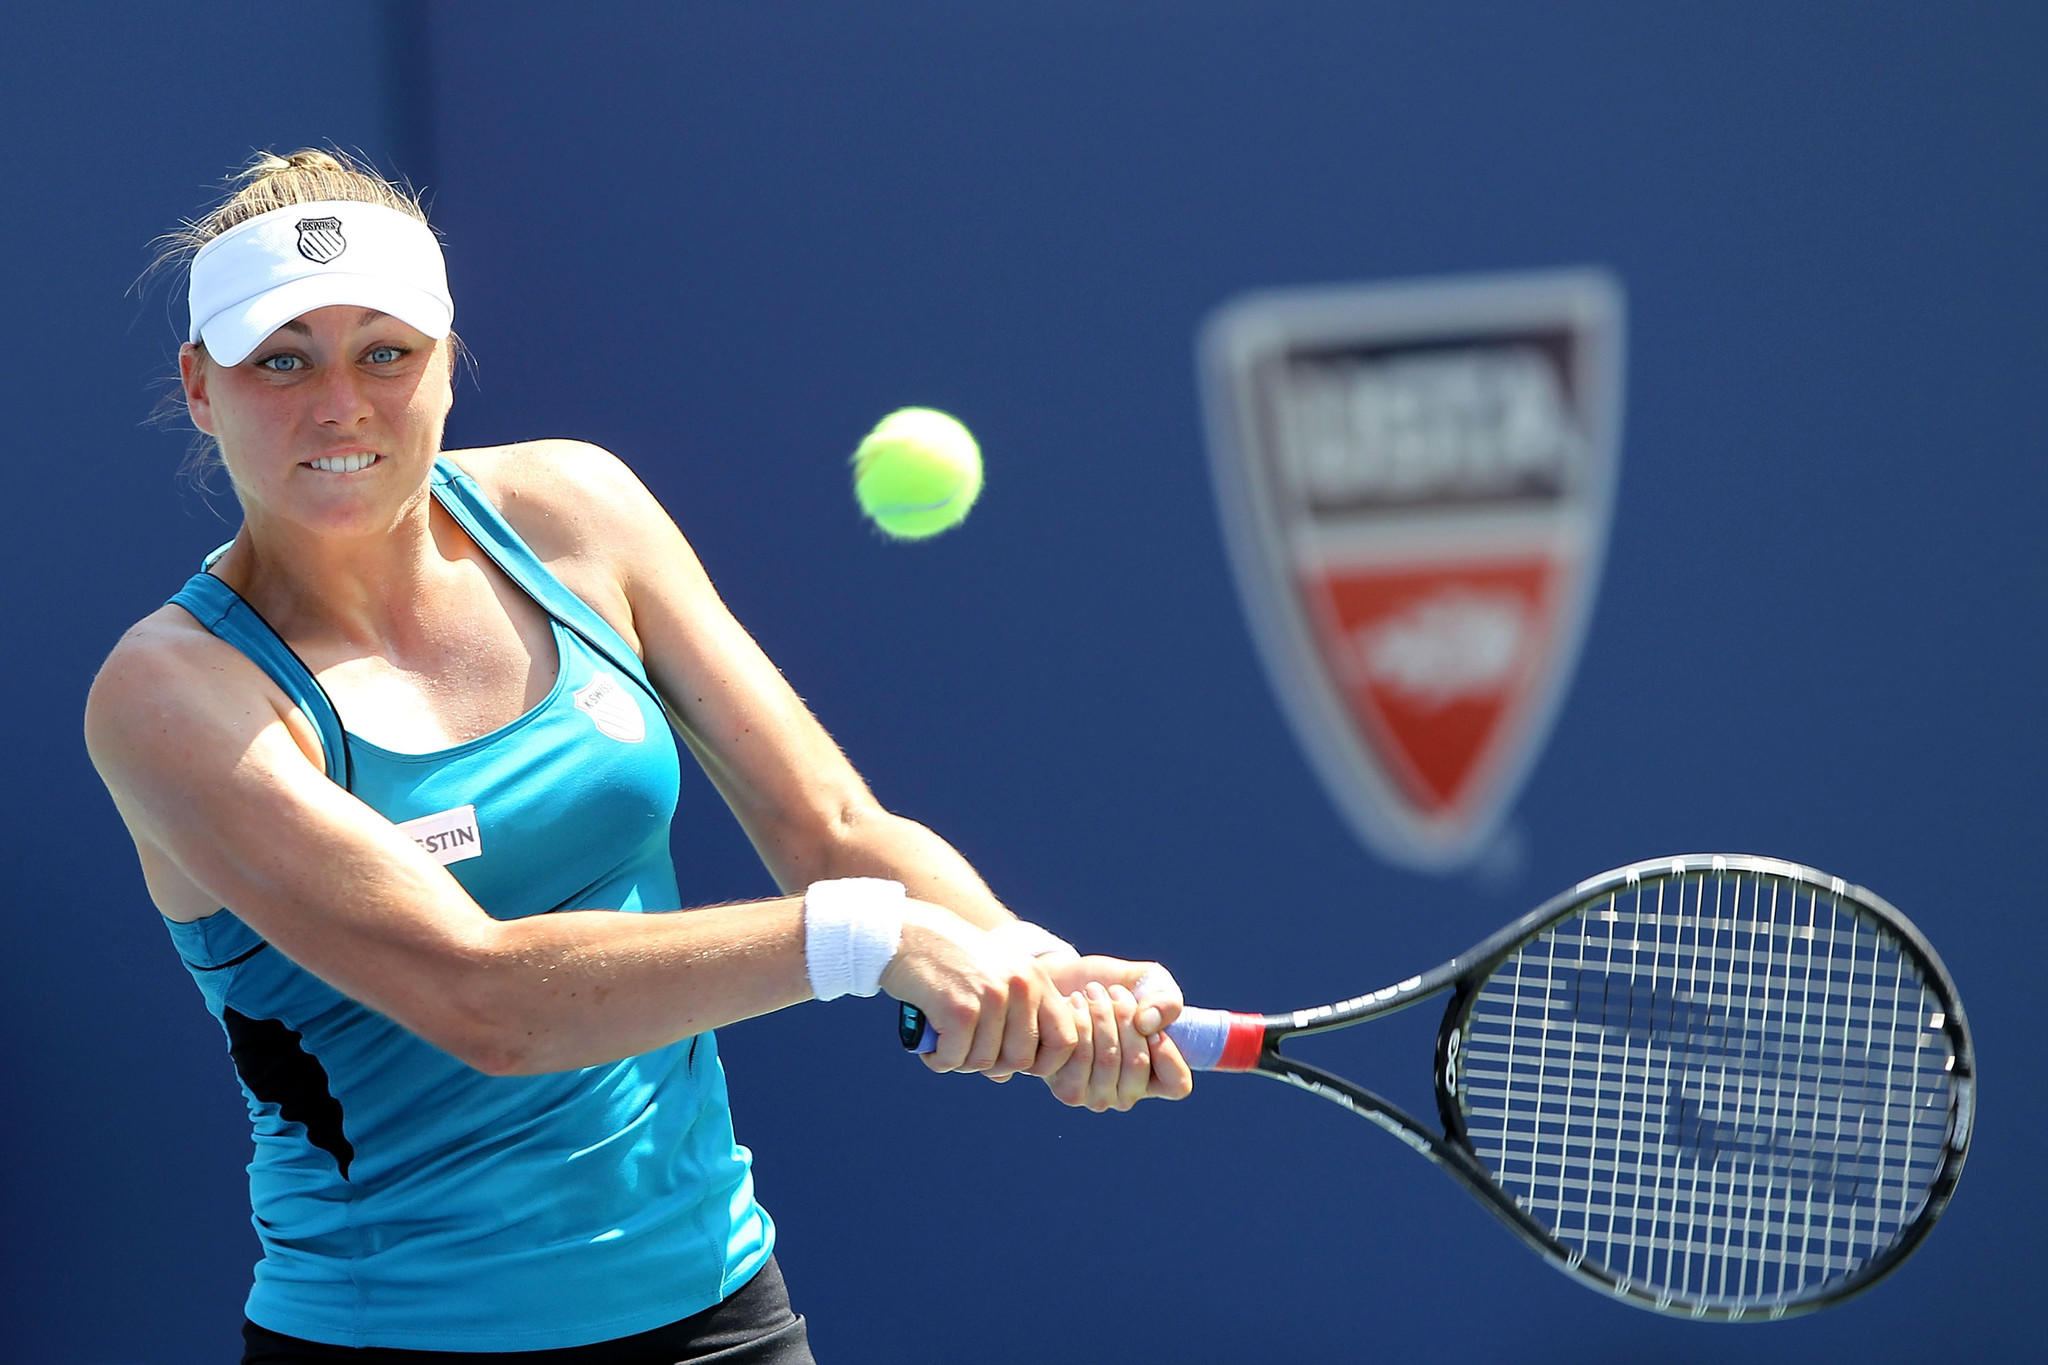 NEW YORK, NY - SEPTEMBER 02: Vera Zvonareva of Russia returns a shot against Anabel Medina Garrigues of Spain during Day Five of the 2011 US Open at the USTA Billie Jean King National Tennis Center on September 2, 2011 in the Flushing neighborhood of the Queens borough of New York City.